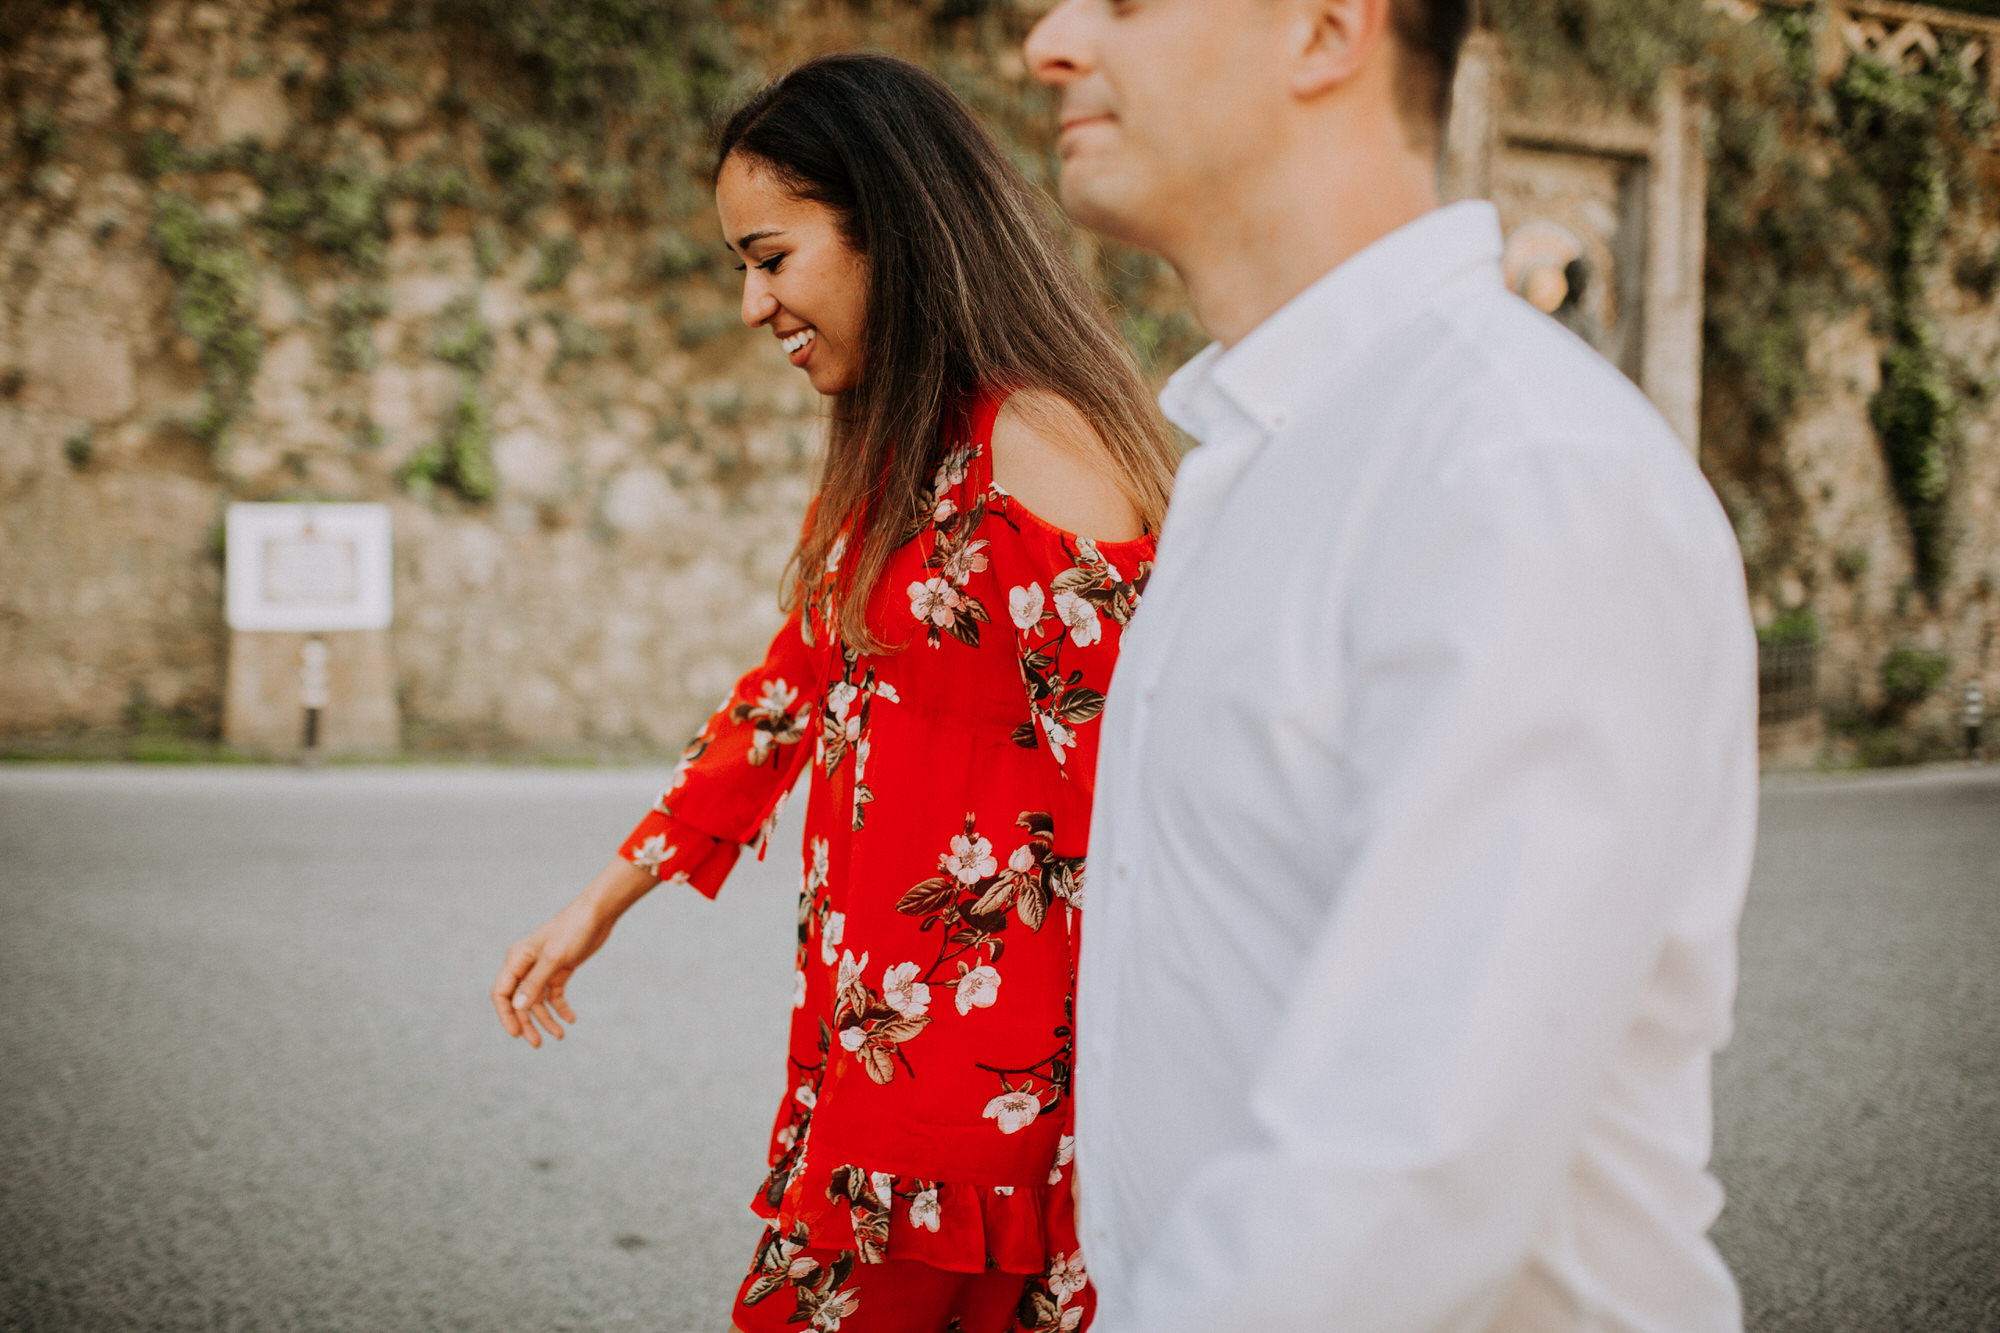 38-sessao-noivado-engagement-love-session-Sintra-lisboa-town-wedding-photography-photographer-natural-best-venue-planner-destination-filipe-santiago-fotografia-lifestyle-documentary